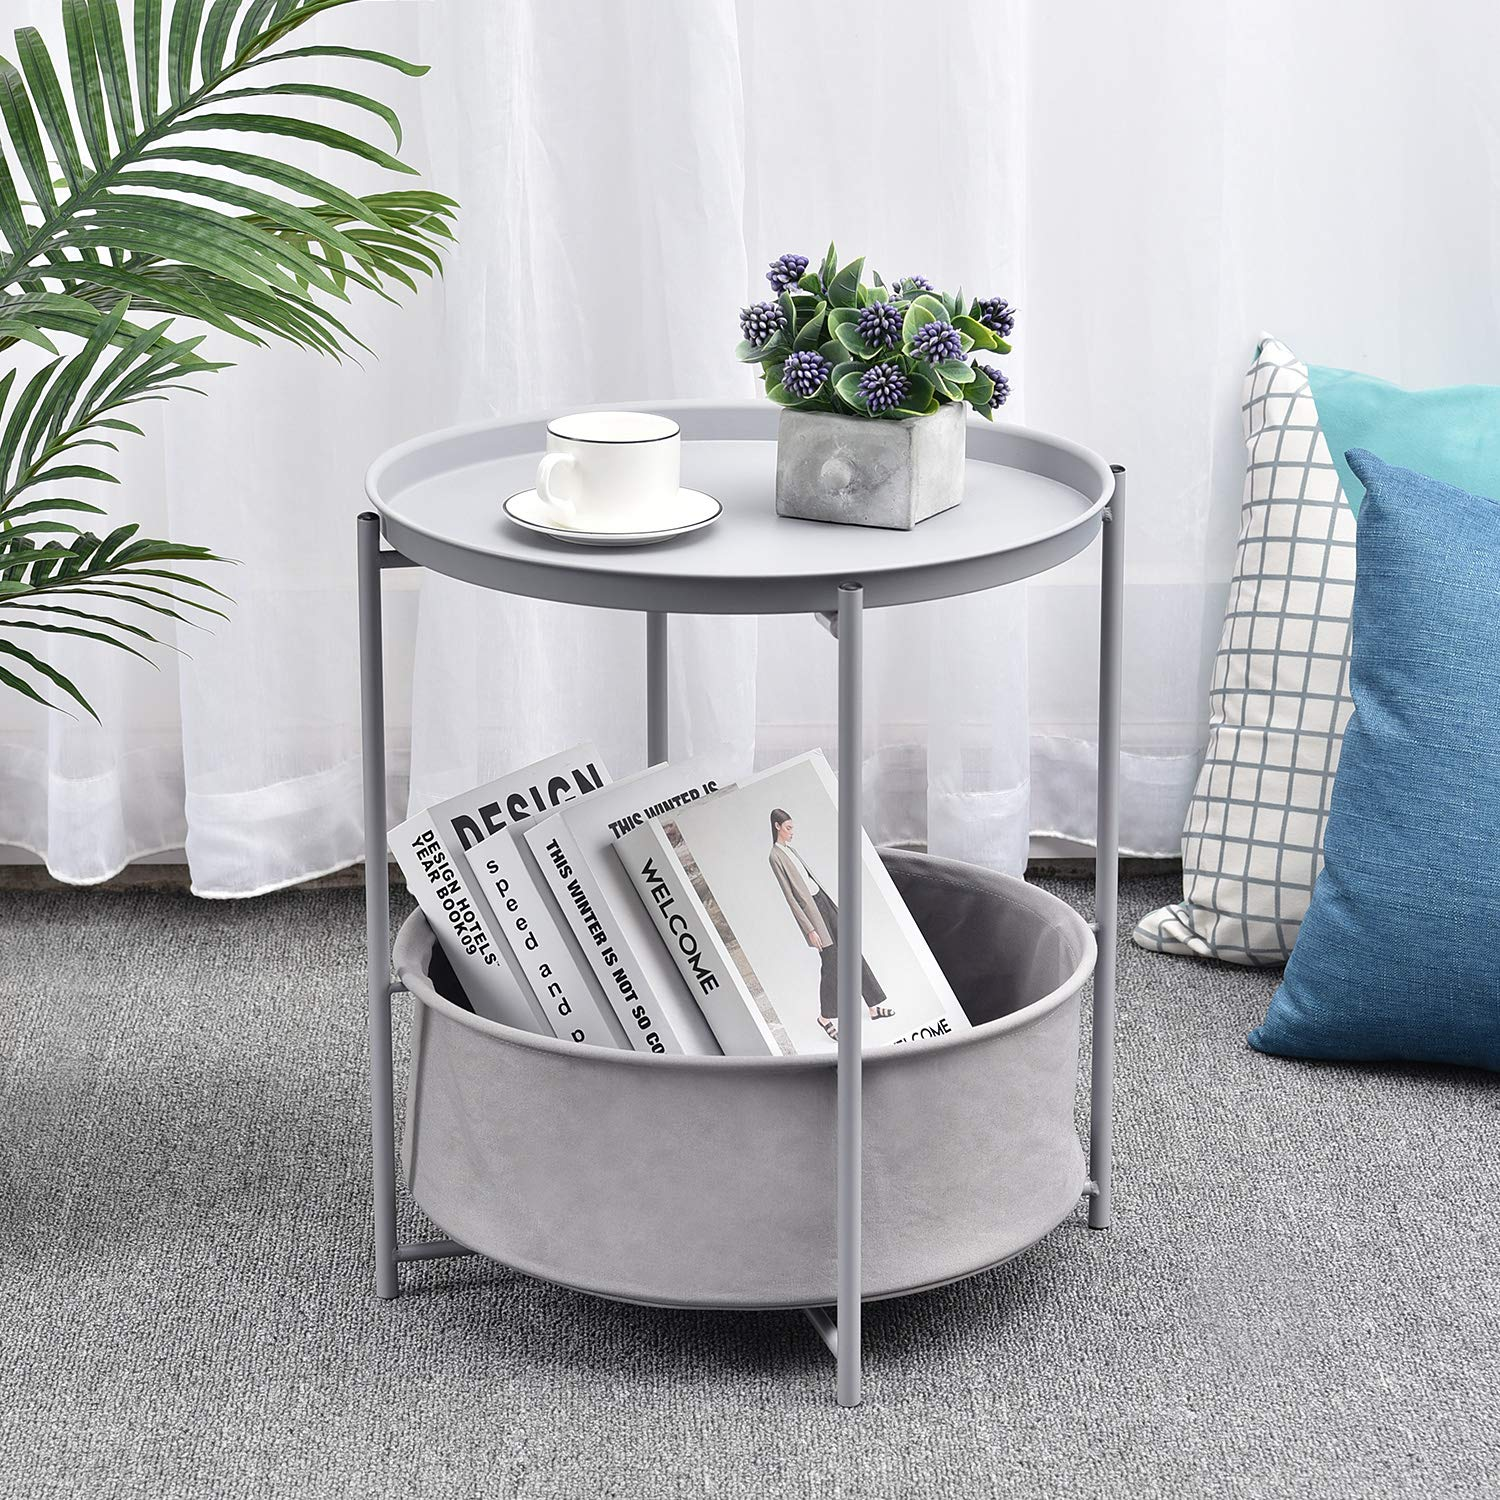 Off White Scandi Style Lamp Table for Living Room Bedroom kingrack Coffee Round Table,Metal Nightstand,Sofa Side Snack Table,Bedside End Table with Detachable Tray Top and fabric Storage Basket